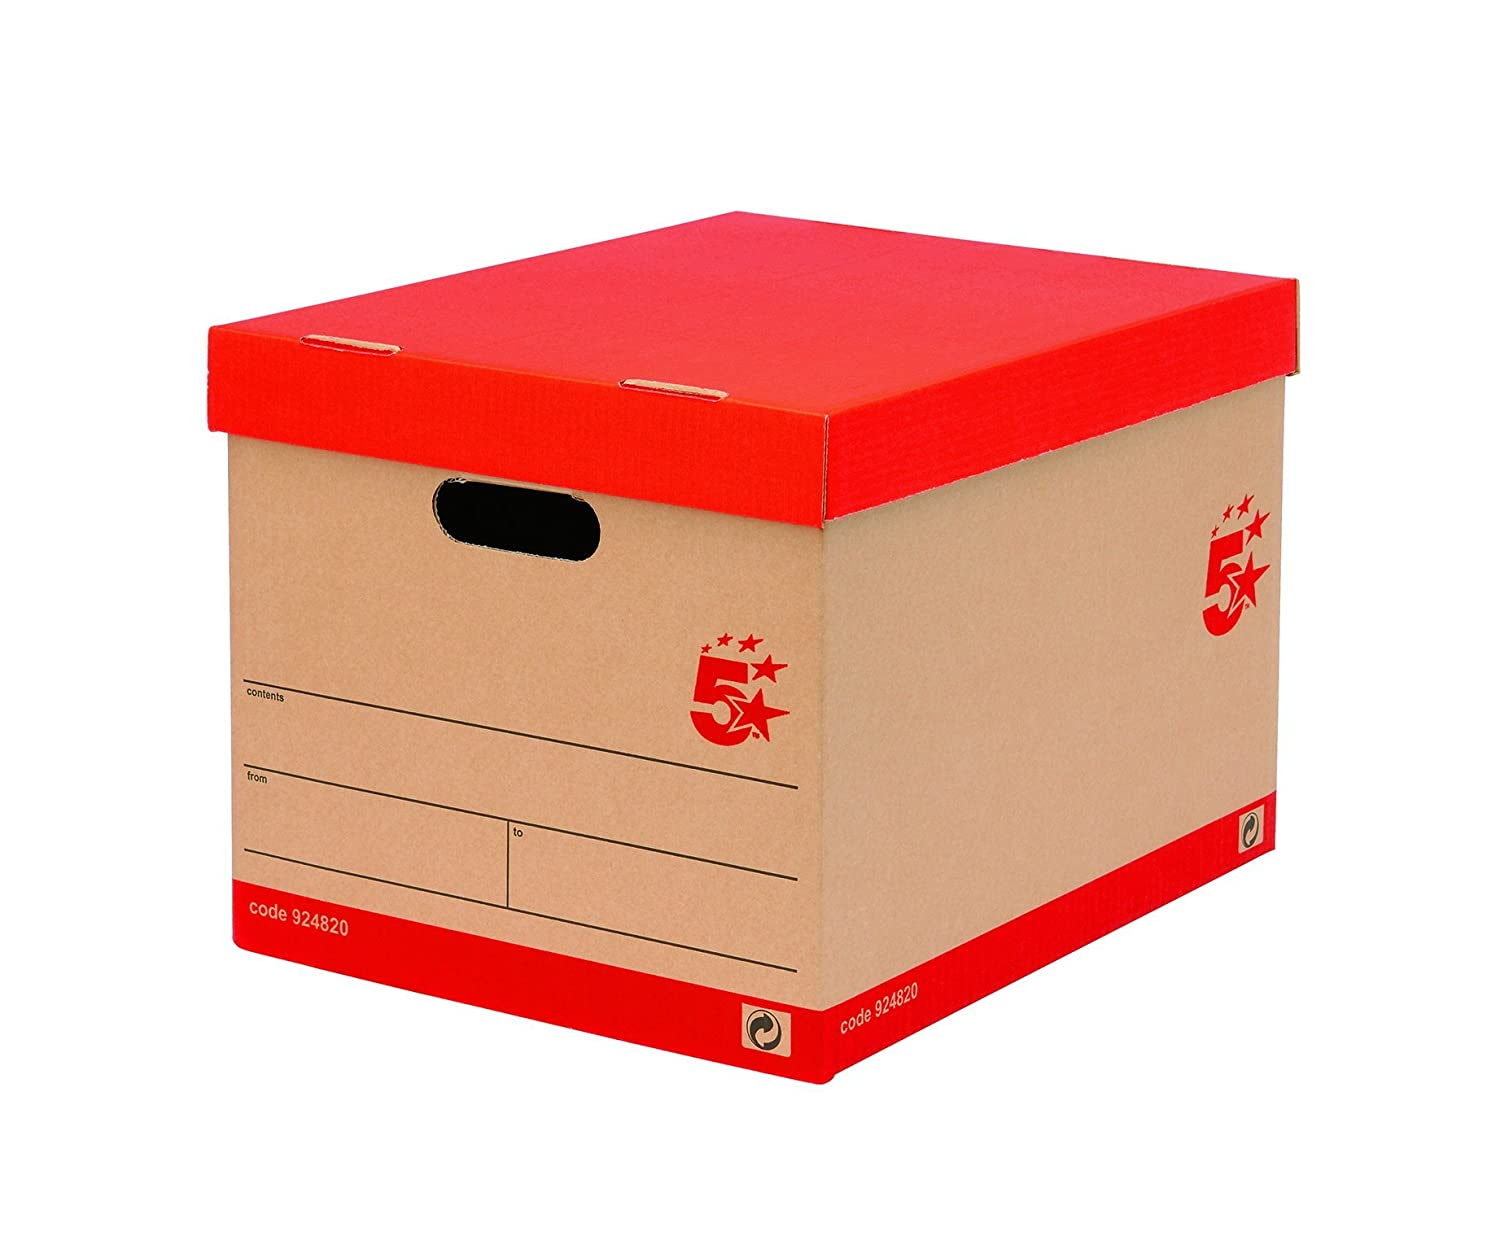 5 Star Office Storage Box For 5 A4 Lever Arch Files Red On Brown [Pack 10]:  Amazon.co.uk: Office Products